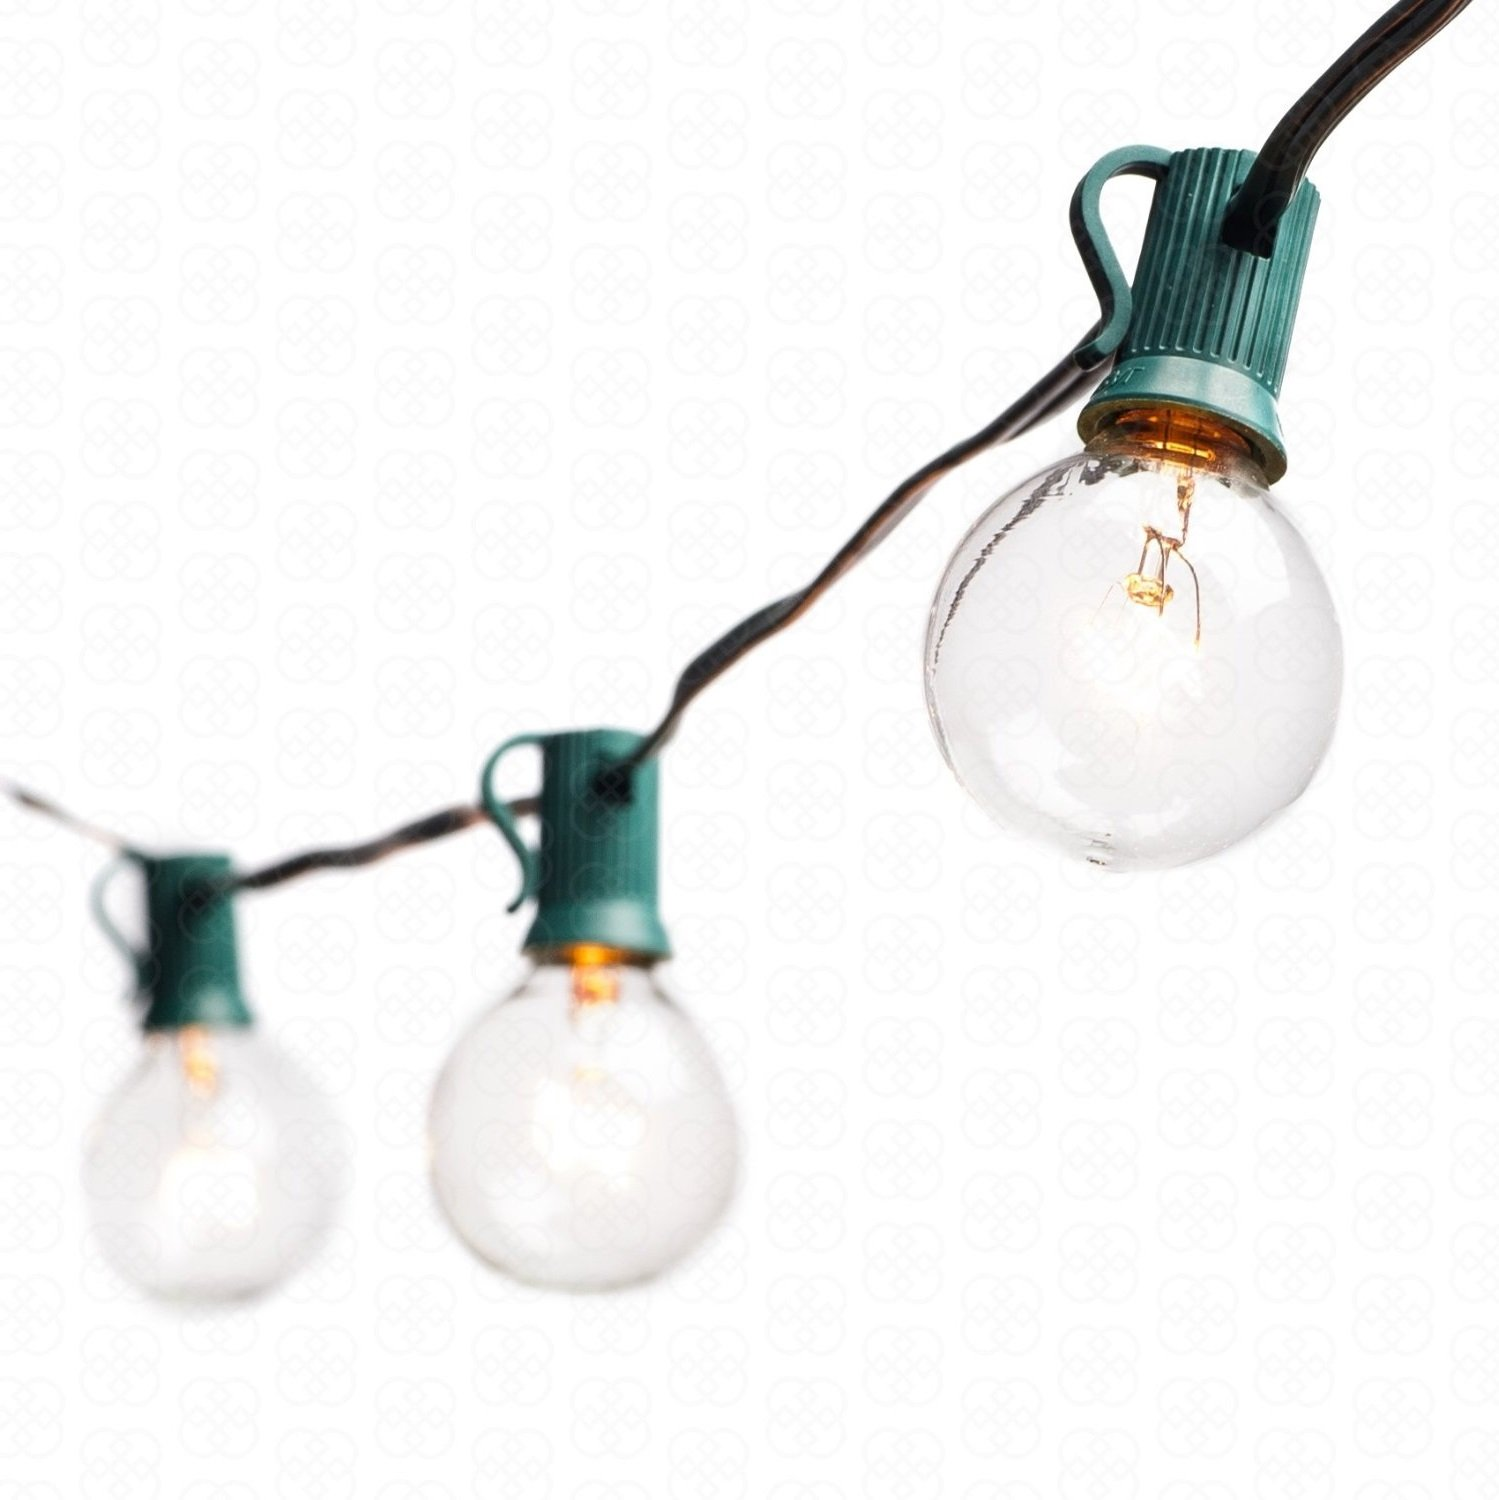 G40 String Lights With 25 Clear Globe Bulbs By Deneve : Deneve G40 String Lights with 25 Clear Globe Bulbs - Green Chickadee Solutions